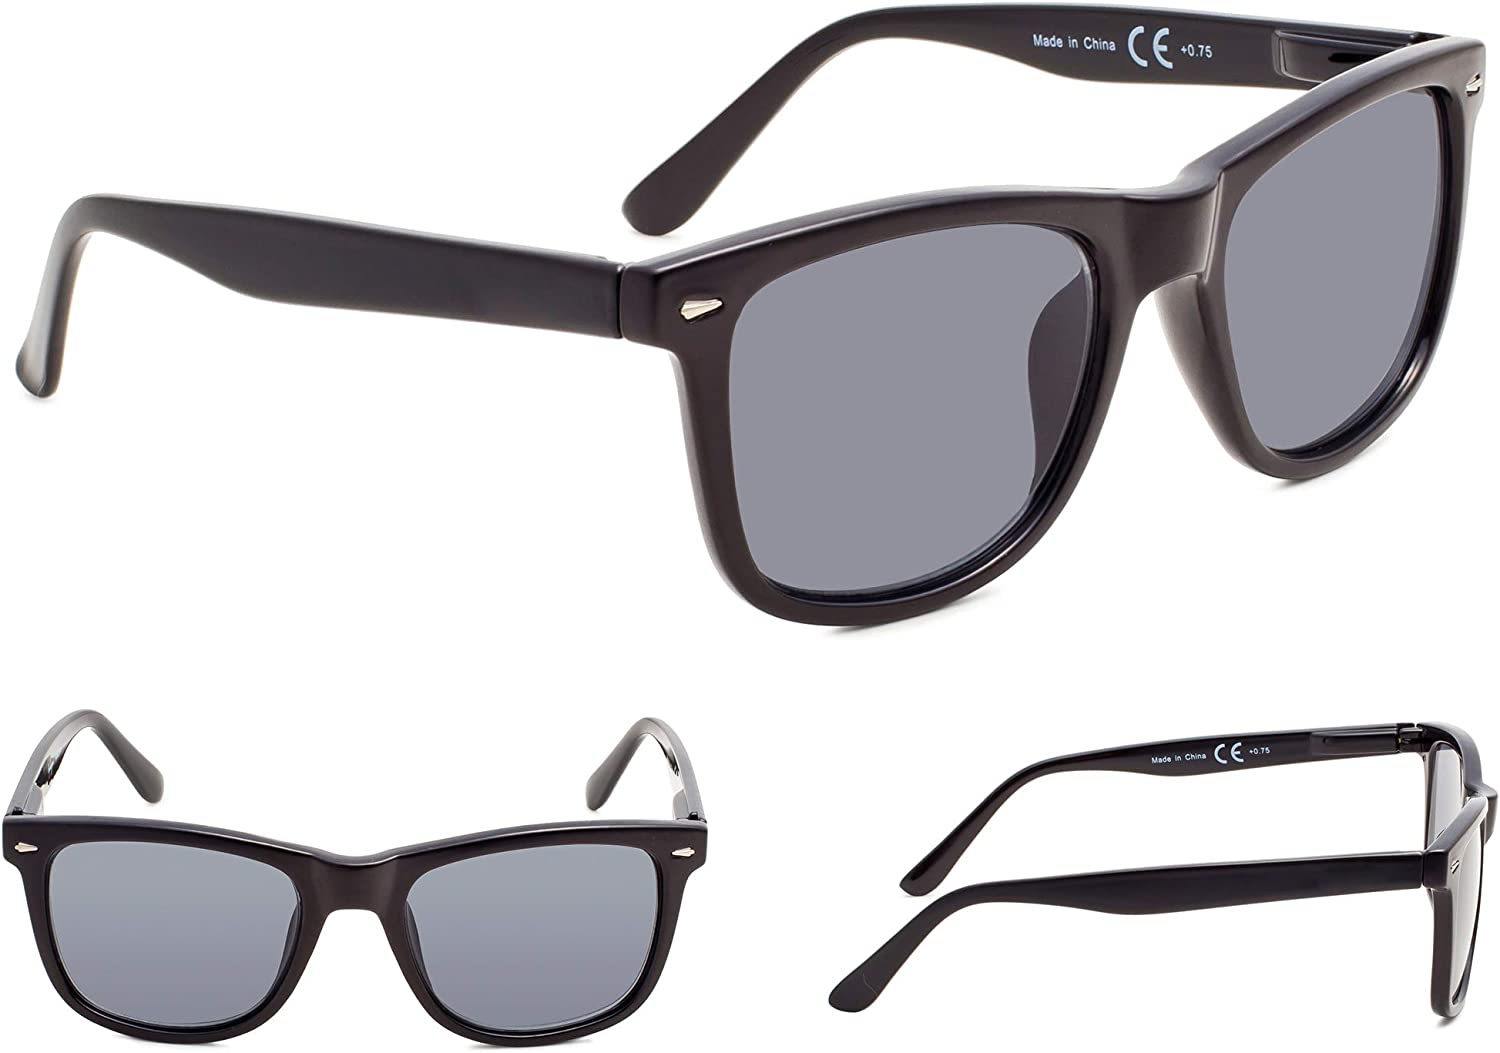 4-Pack Large Lenses Reading Glasses with Spring-Hinges